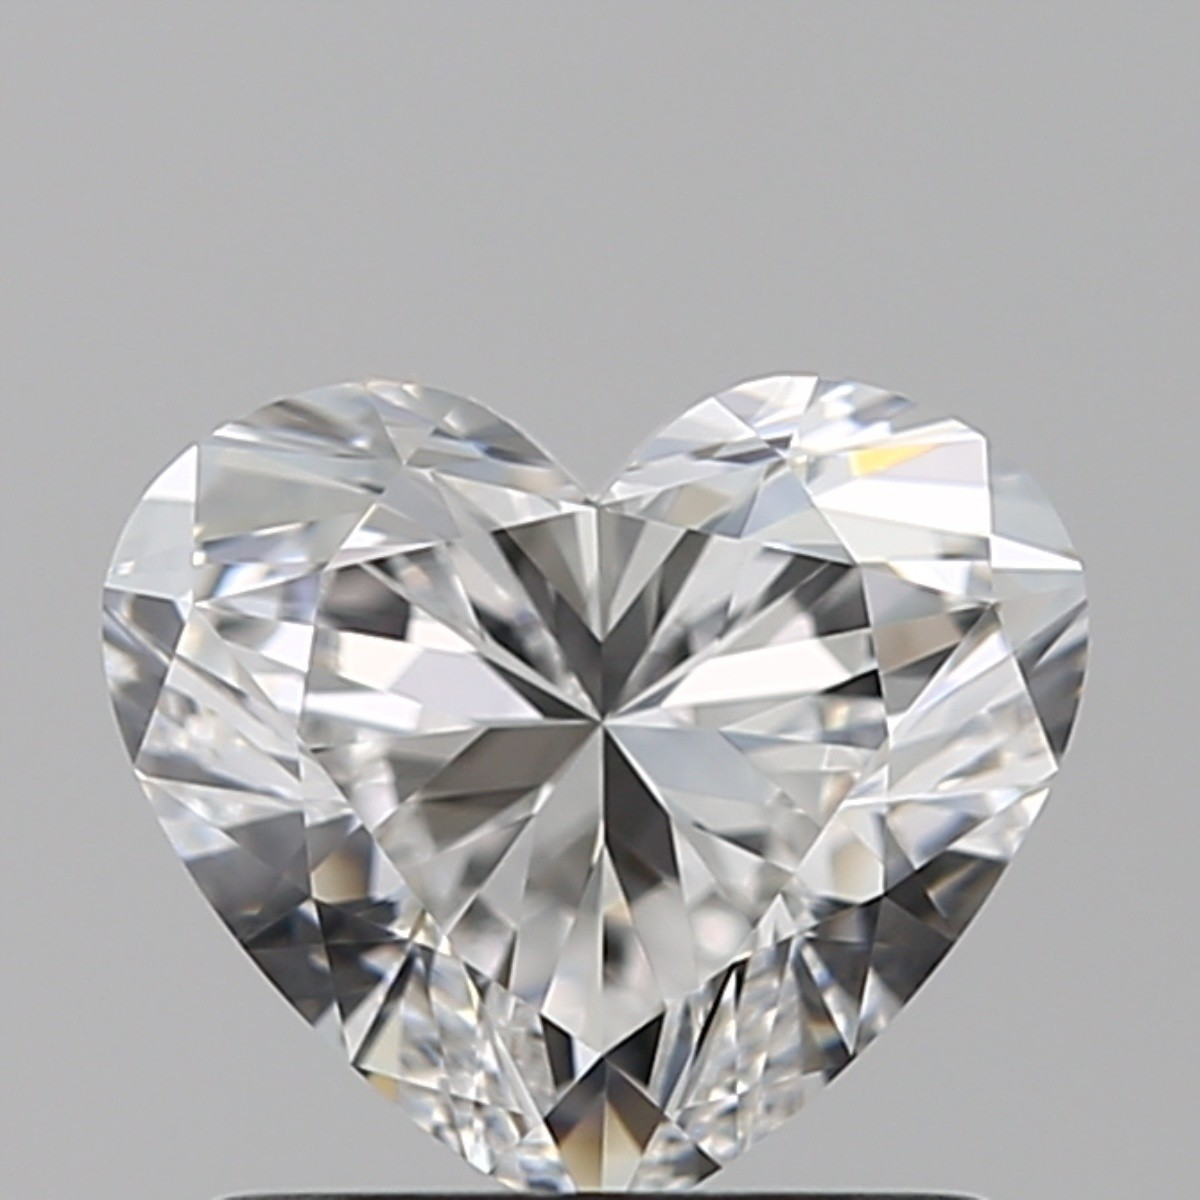 1.01 Carat Heart Diamond (E/VVS1)